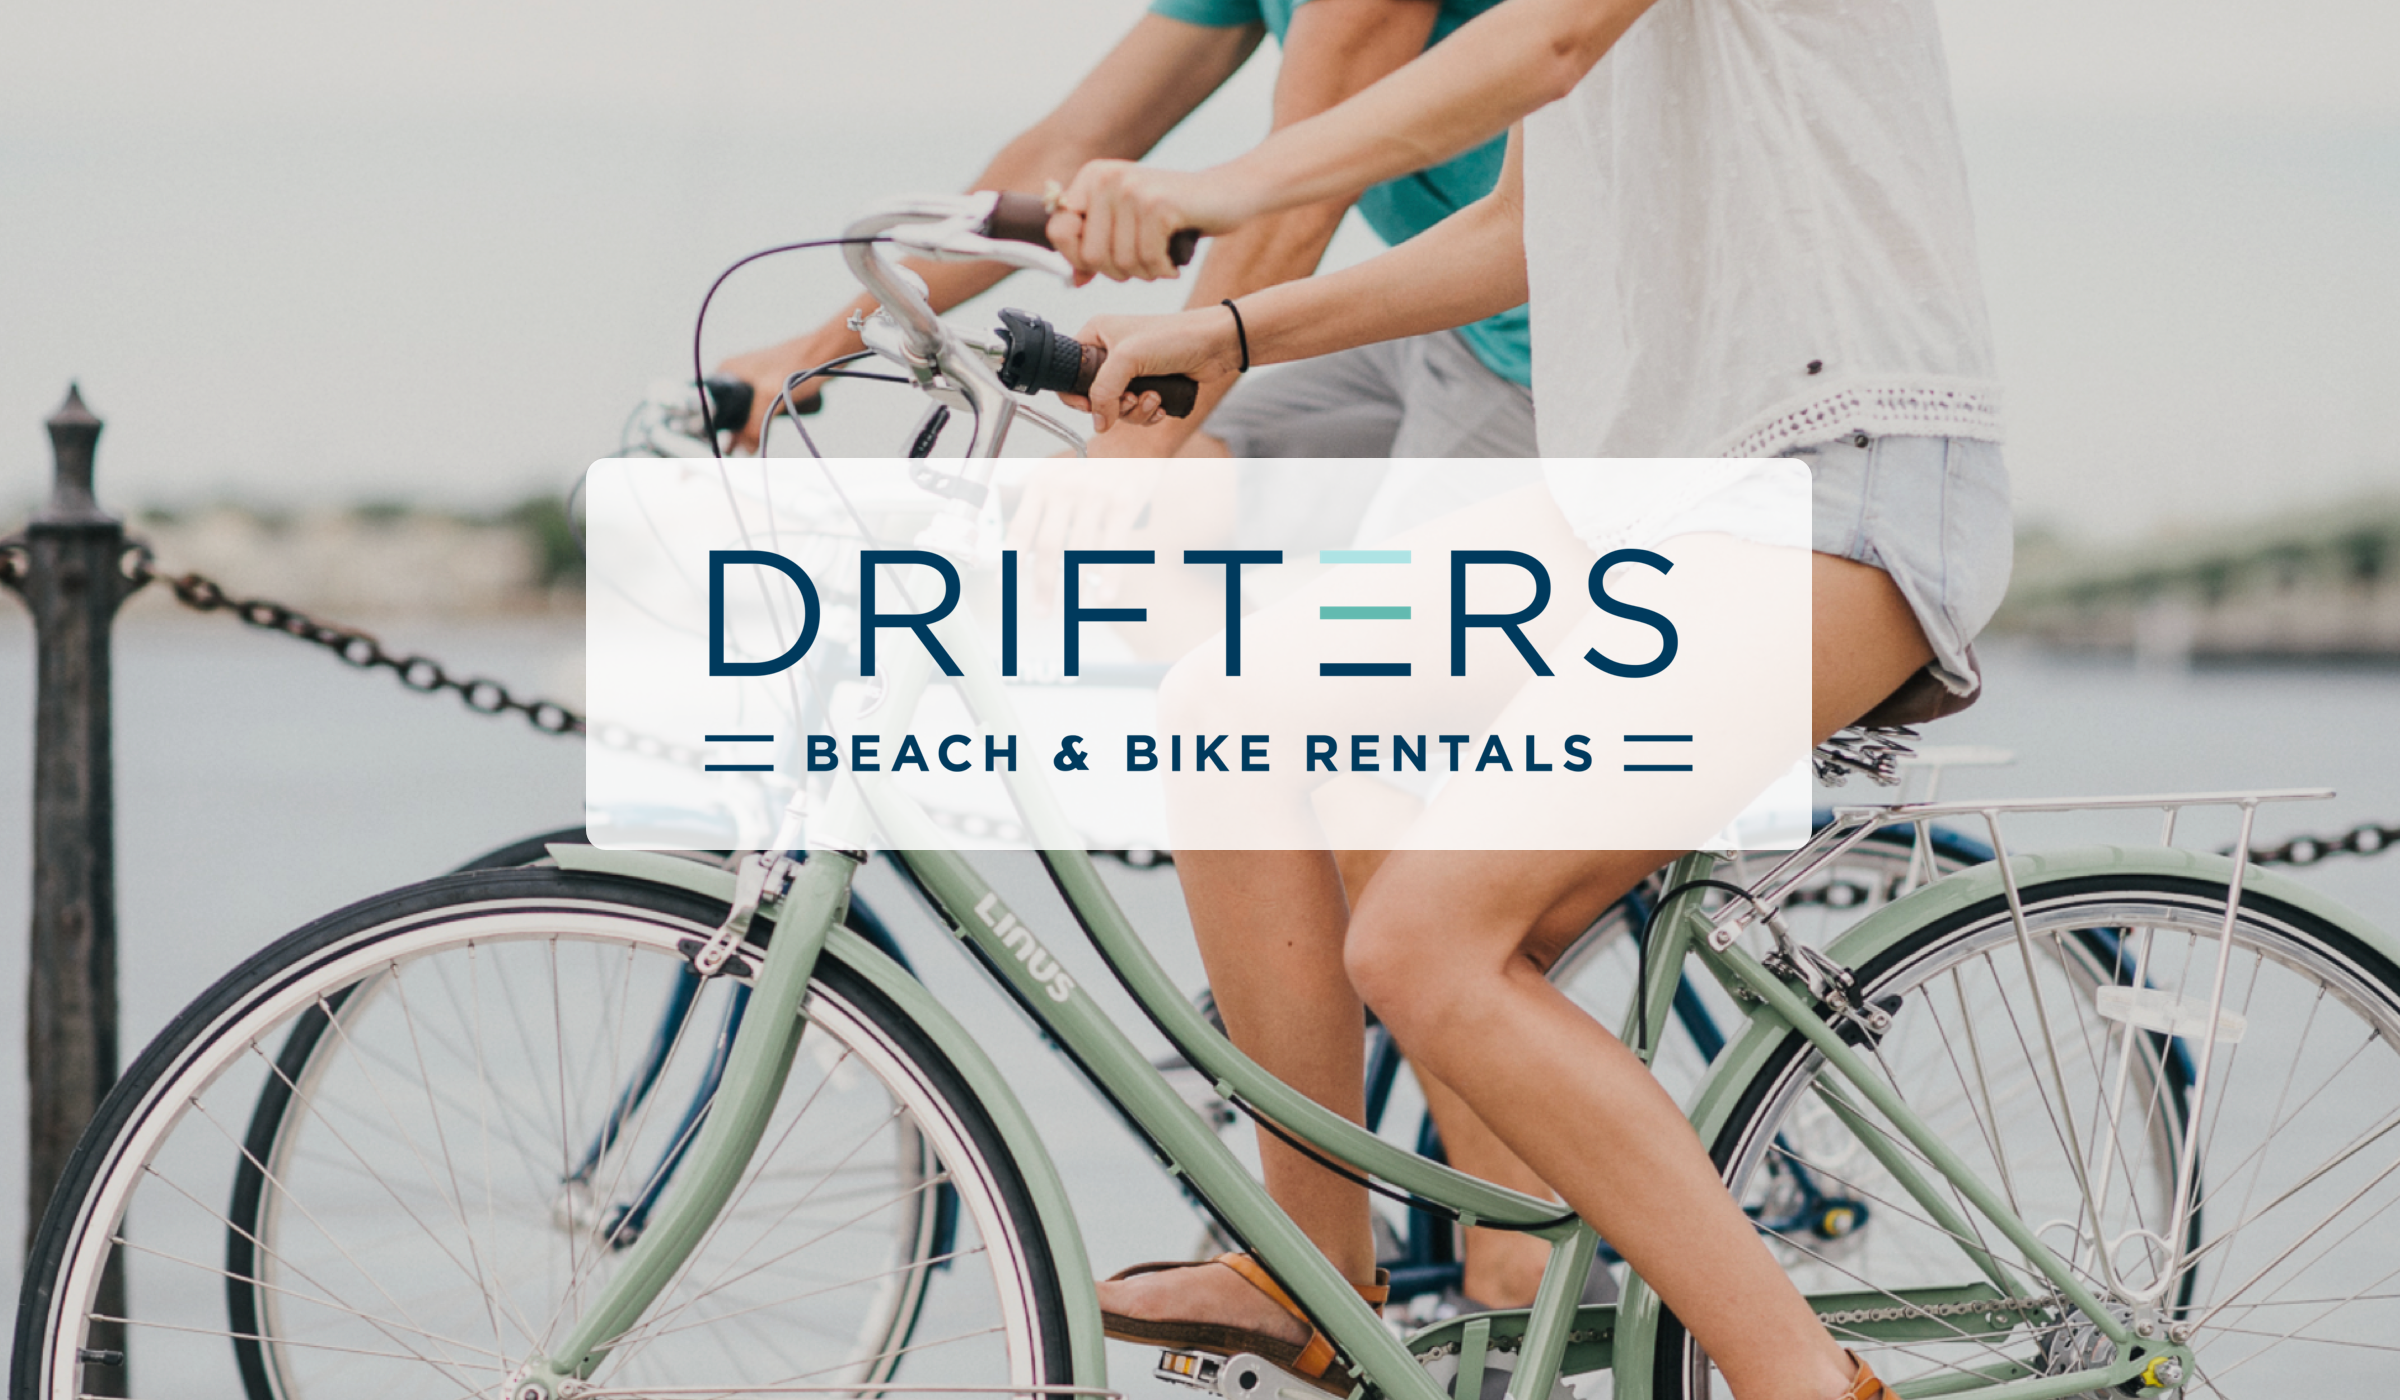 Check out our friends at Drifters for bike and beach rentals - Click here for website